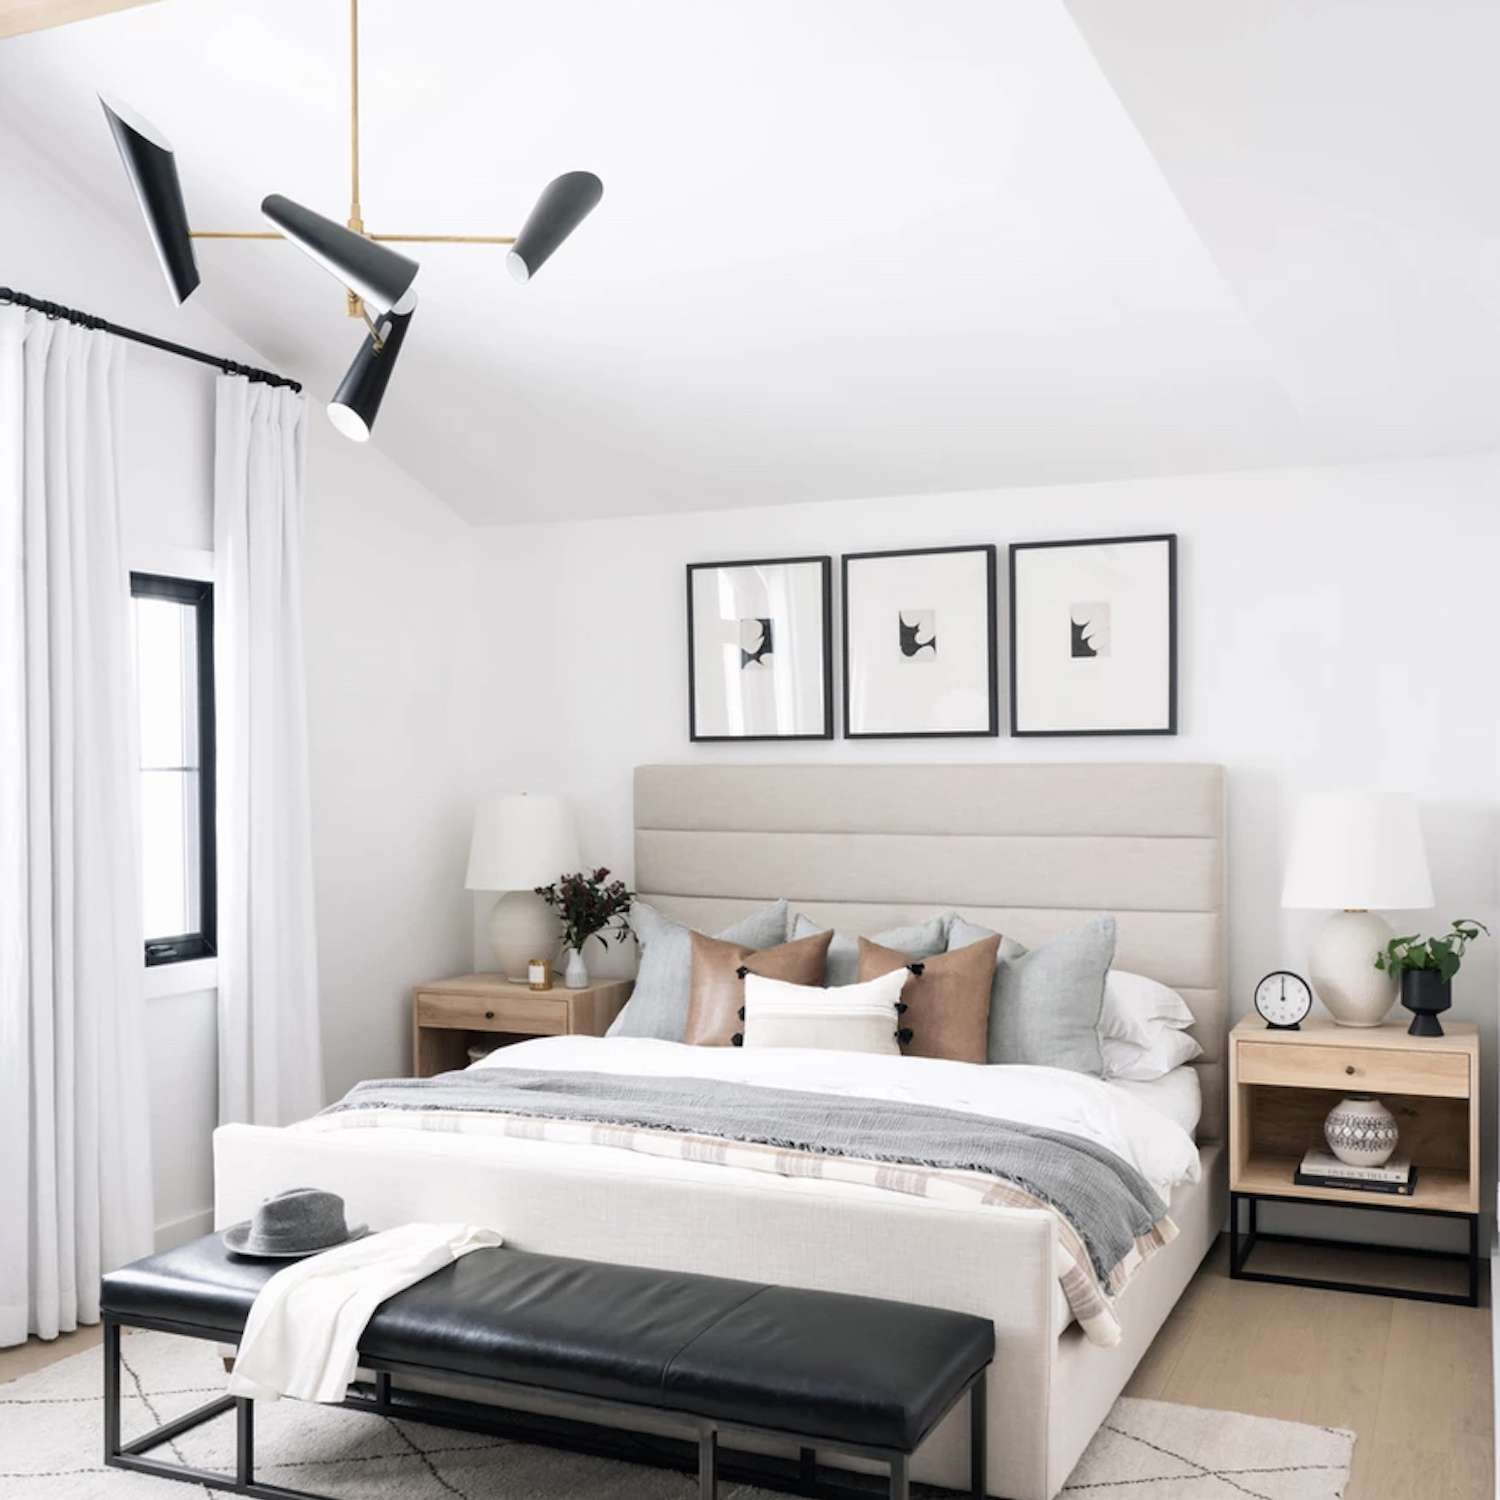 modern bedroom with light gray and brown accents. white area rug. Black leather bench at end of the bed